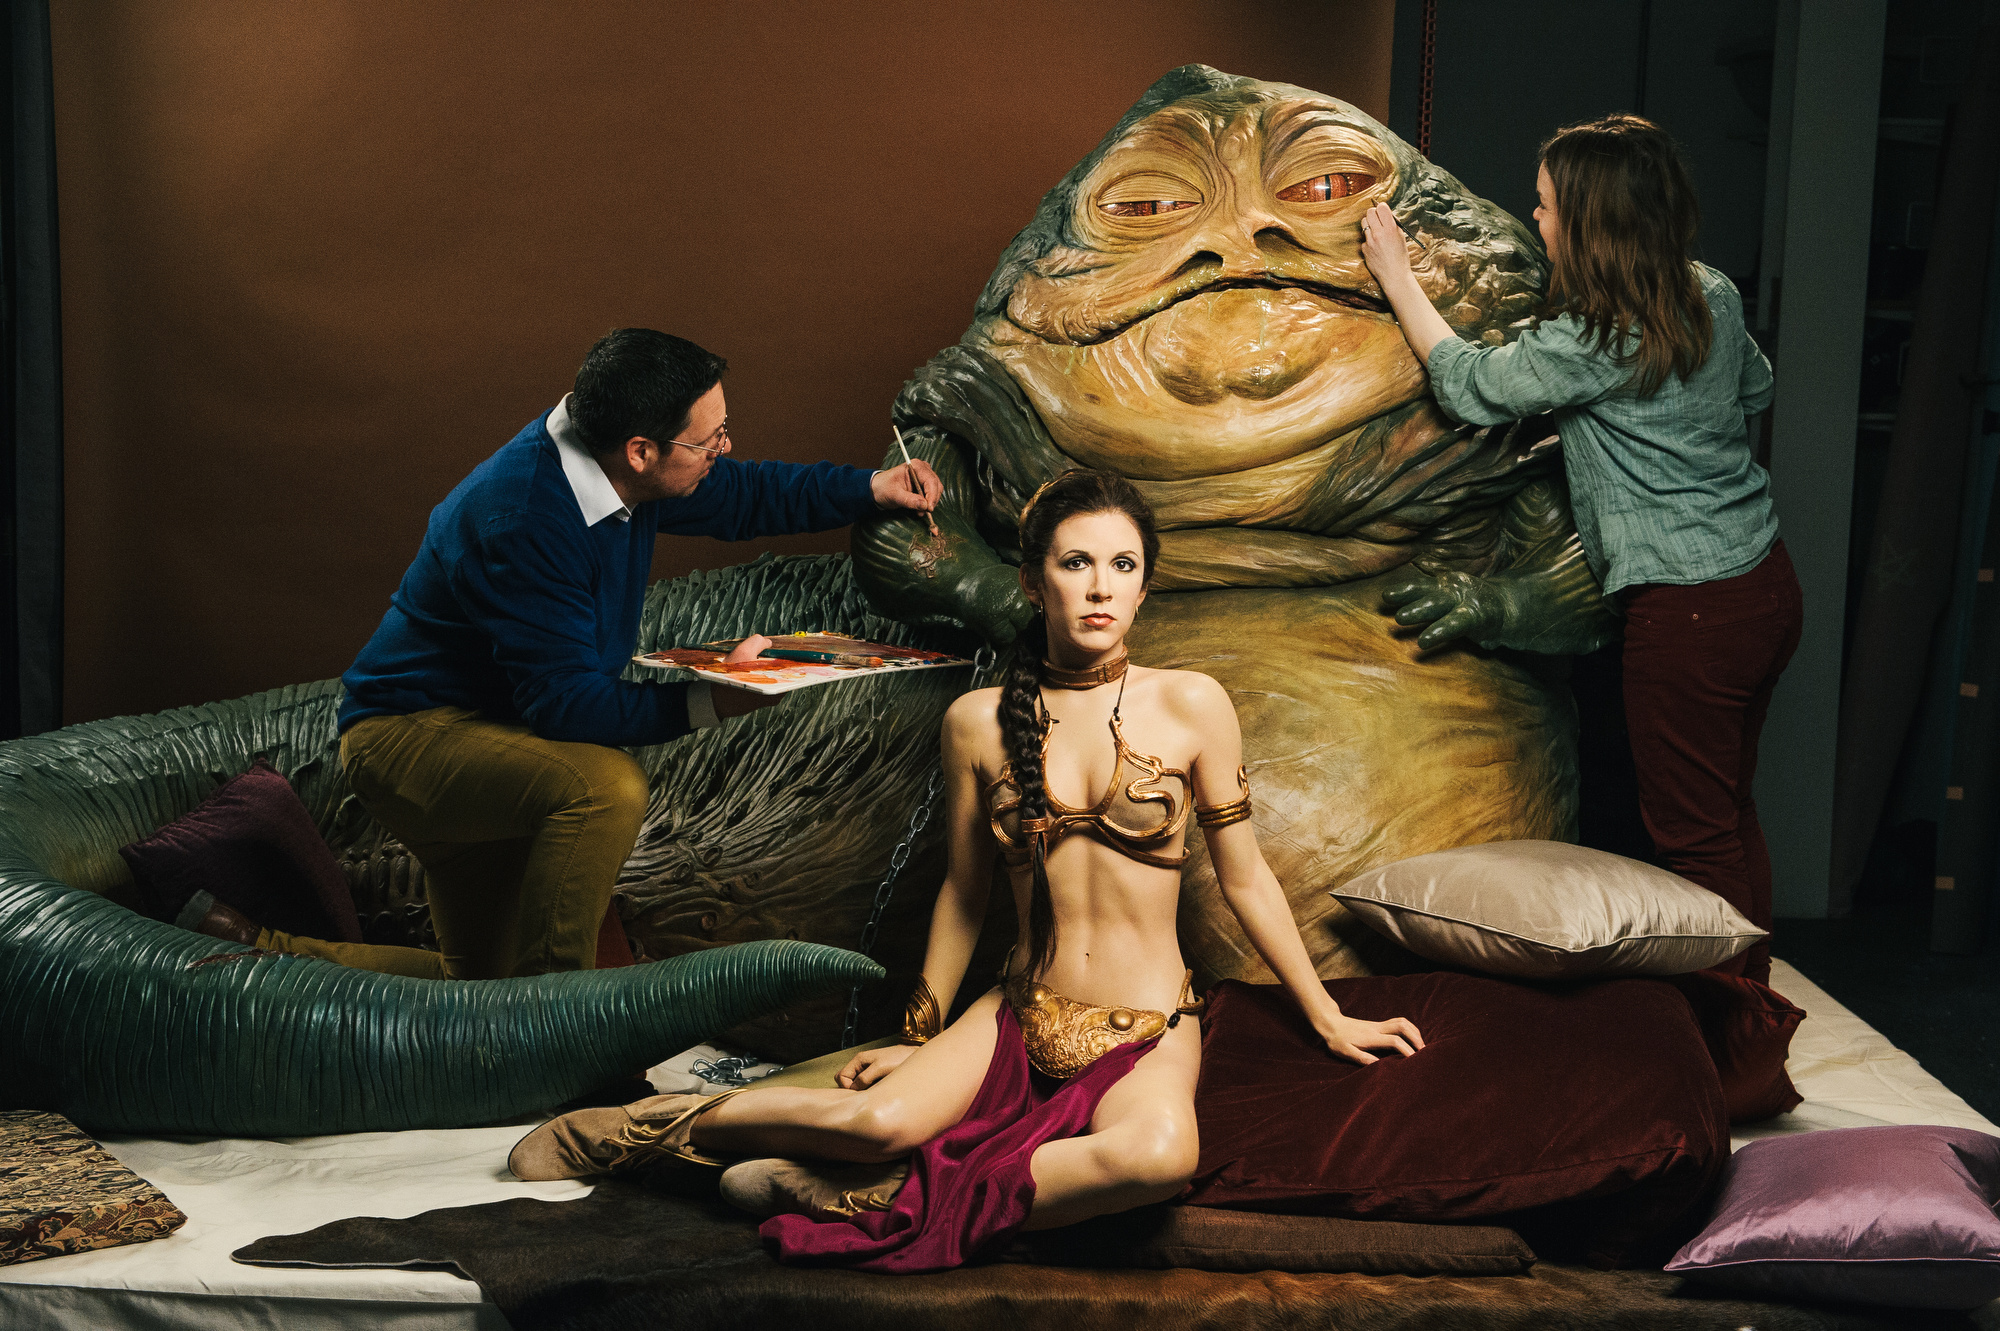 Madame-Tussauds-Star-Wars-Experience-JABBA-THE-HUTT-AND-PRINCESS-LEIA-10